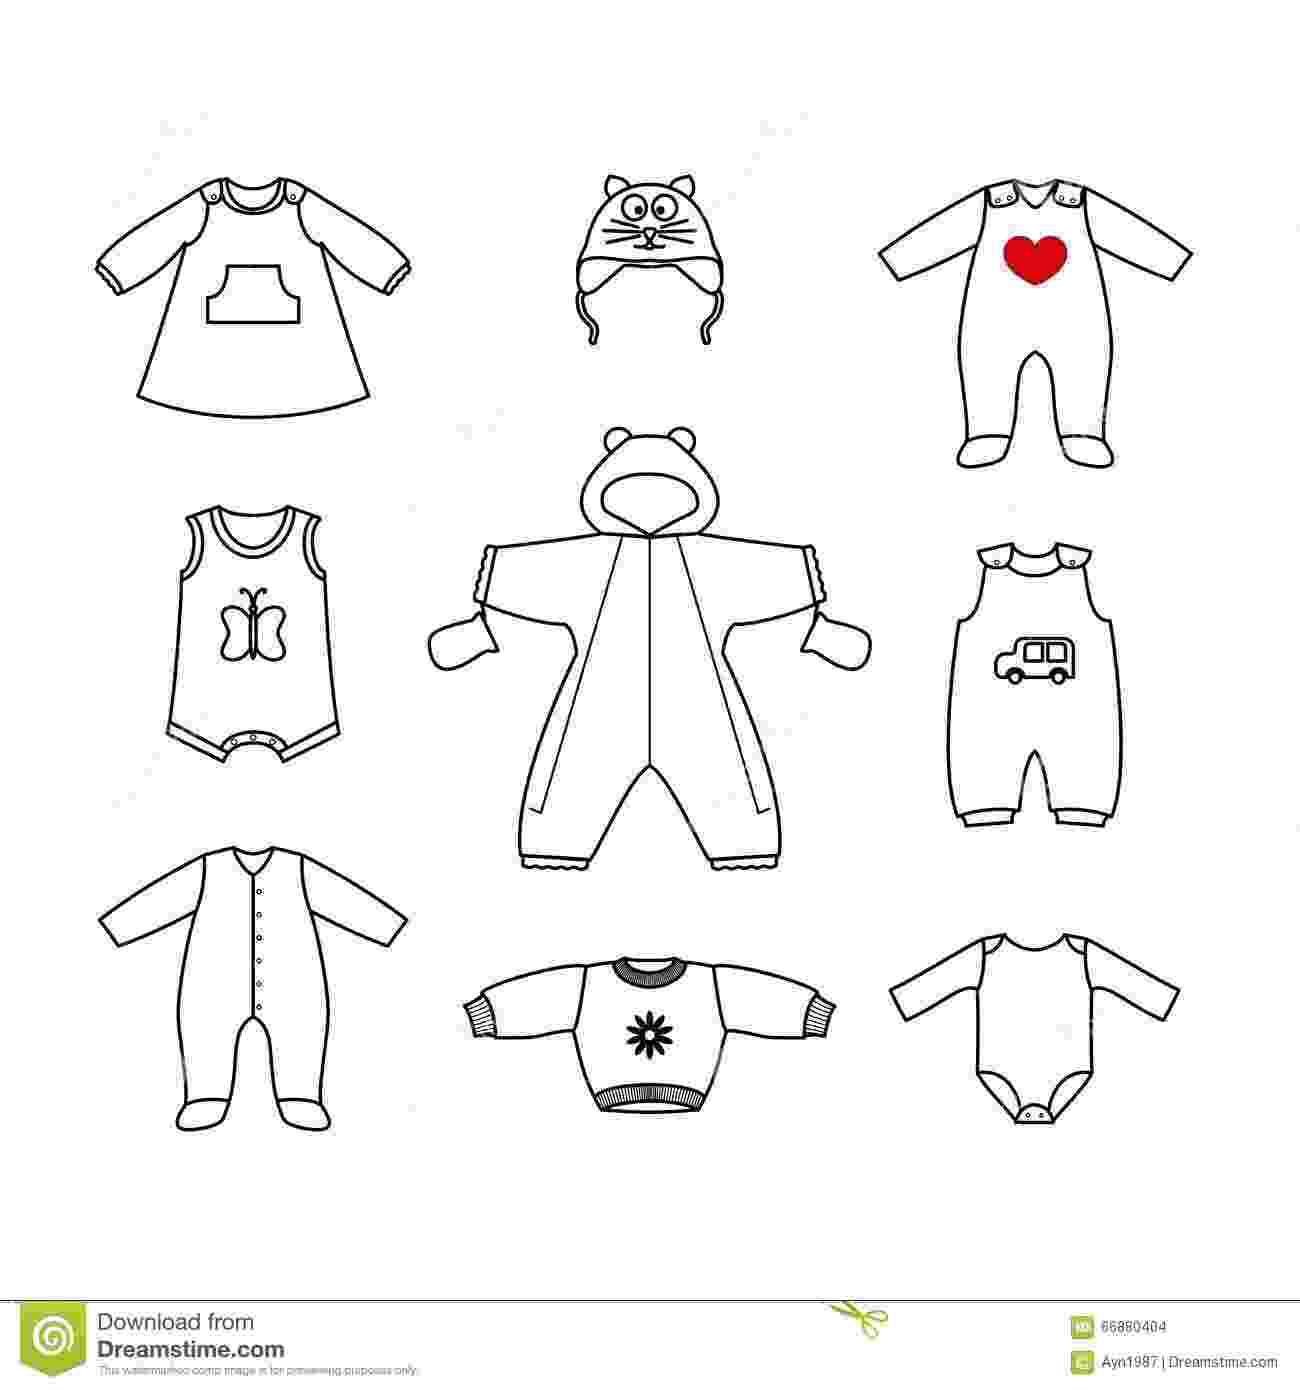 baby clothes coloring pages free printable baby coloring pages for kids cool2bkids coloring pages clothes baby